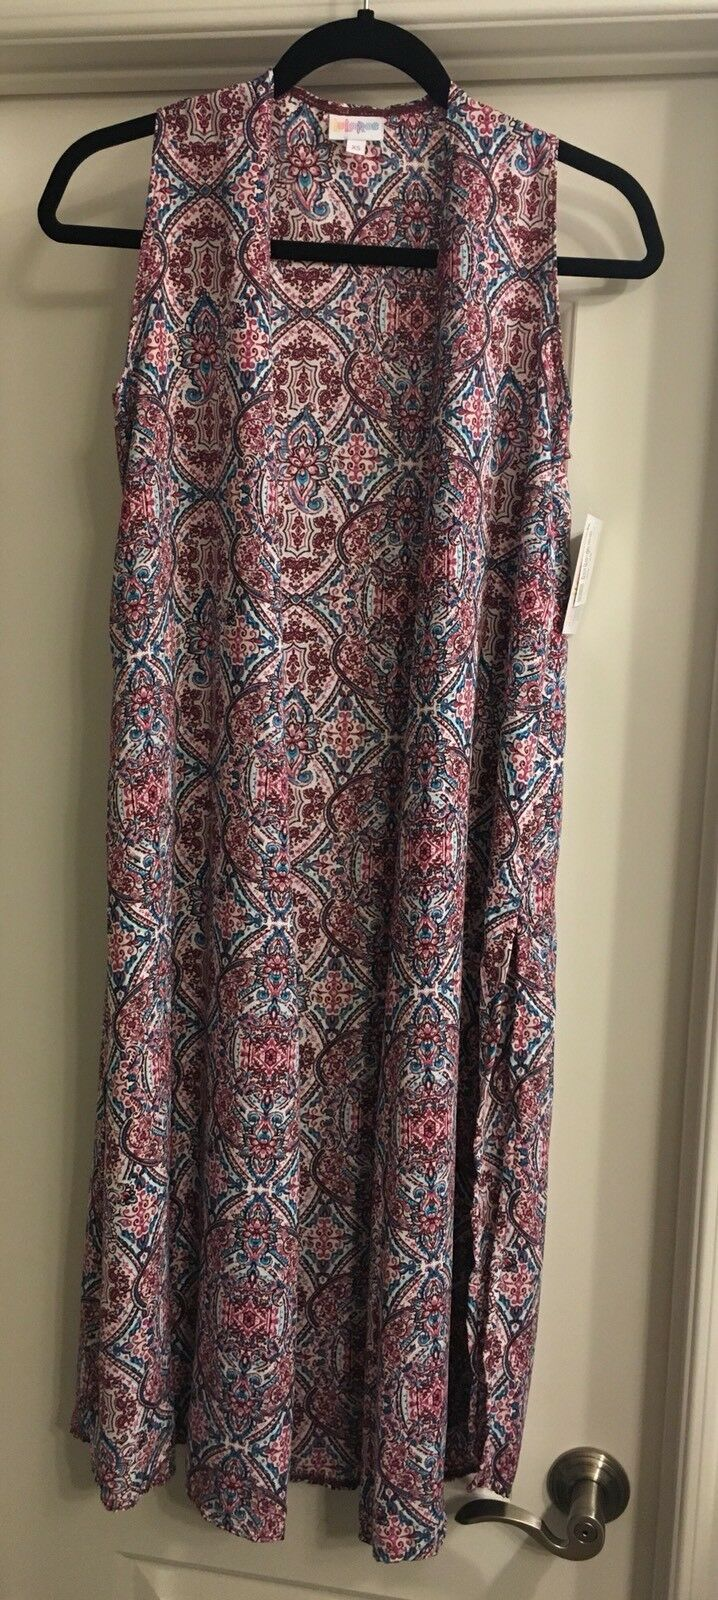 LuLaRoe Xs Extra Small Joy Stained Glass Paisley Floral White bluee Pink Burgundy